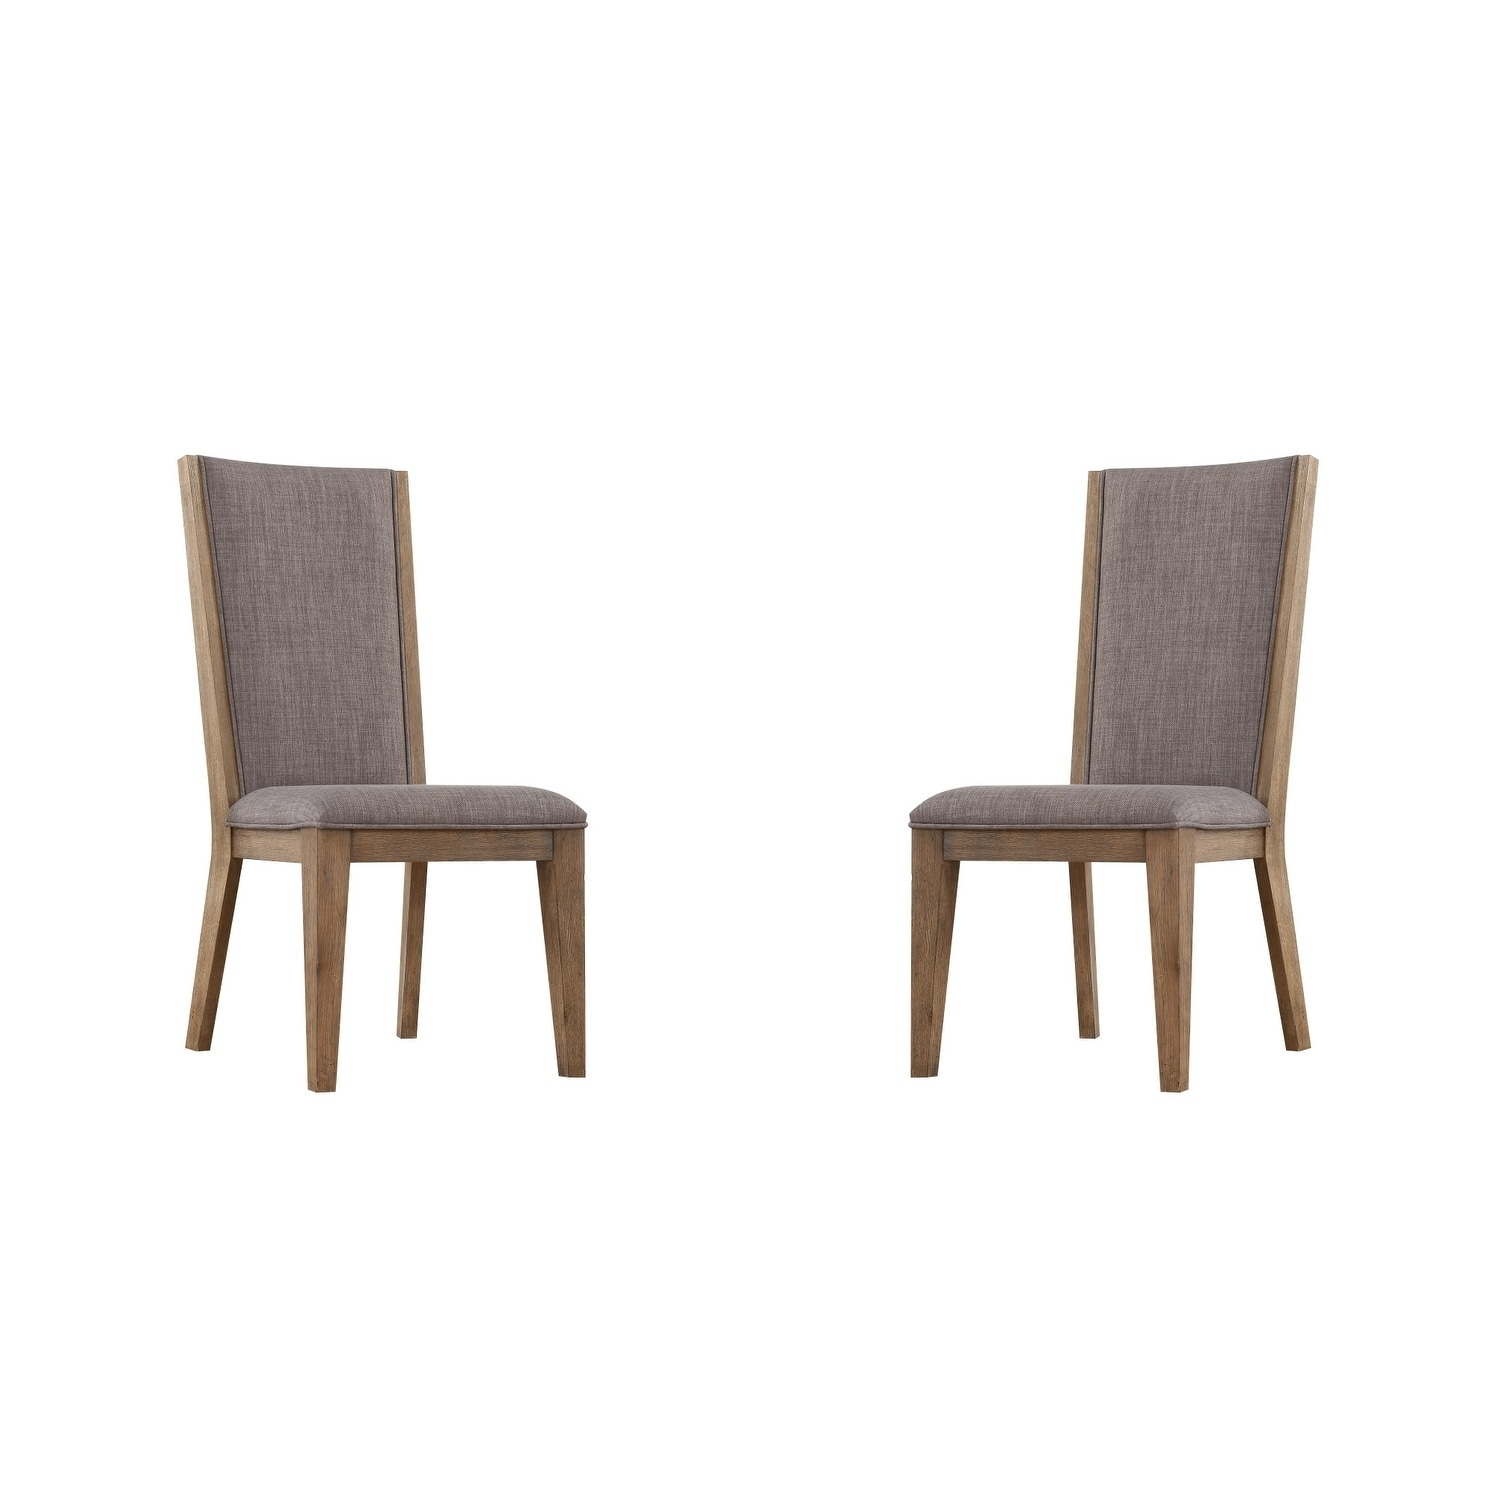 Vista Weathered Gray Upholstered Dining Chair with Tailored Welting And Oak Legs, Set of Two